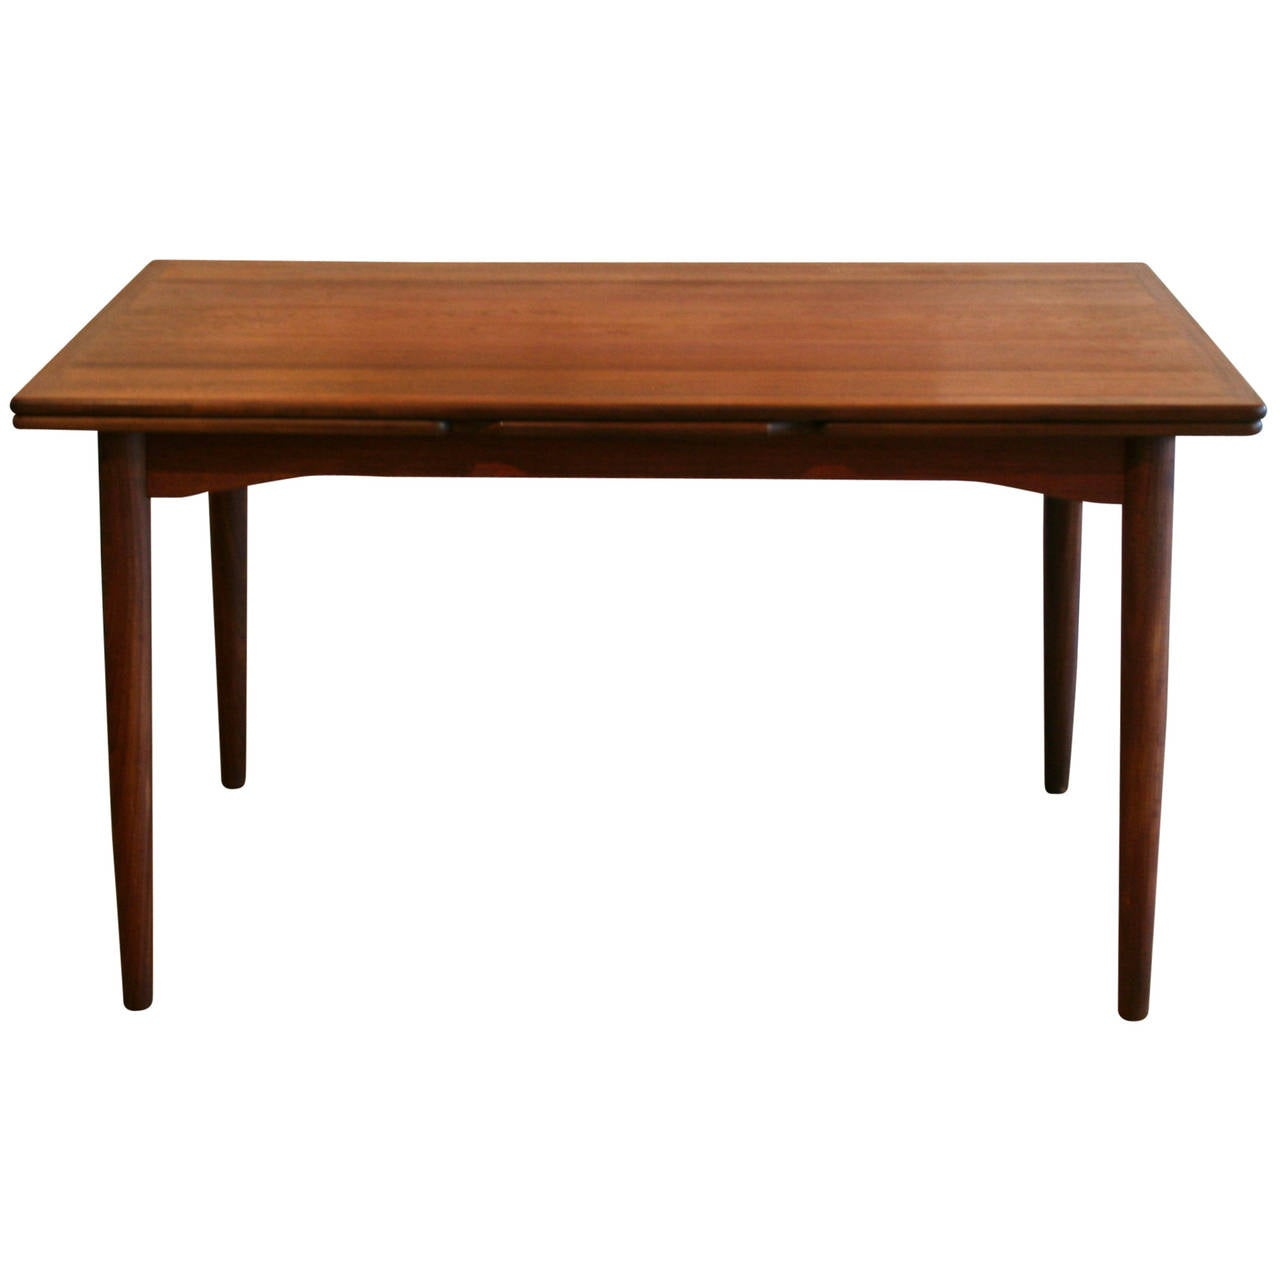 Vintage Danish Teak Dining Table At 1stdibs